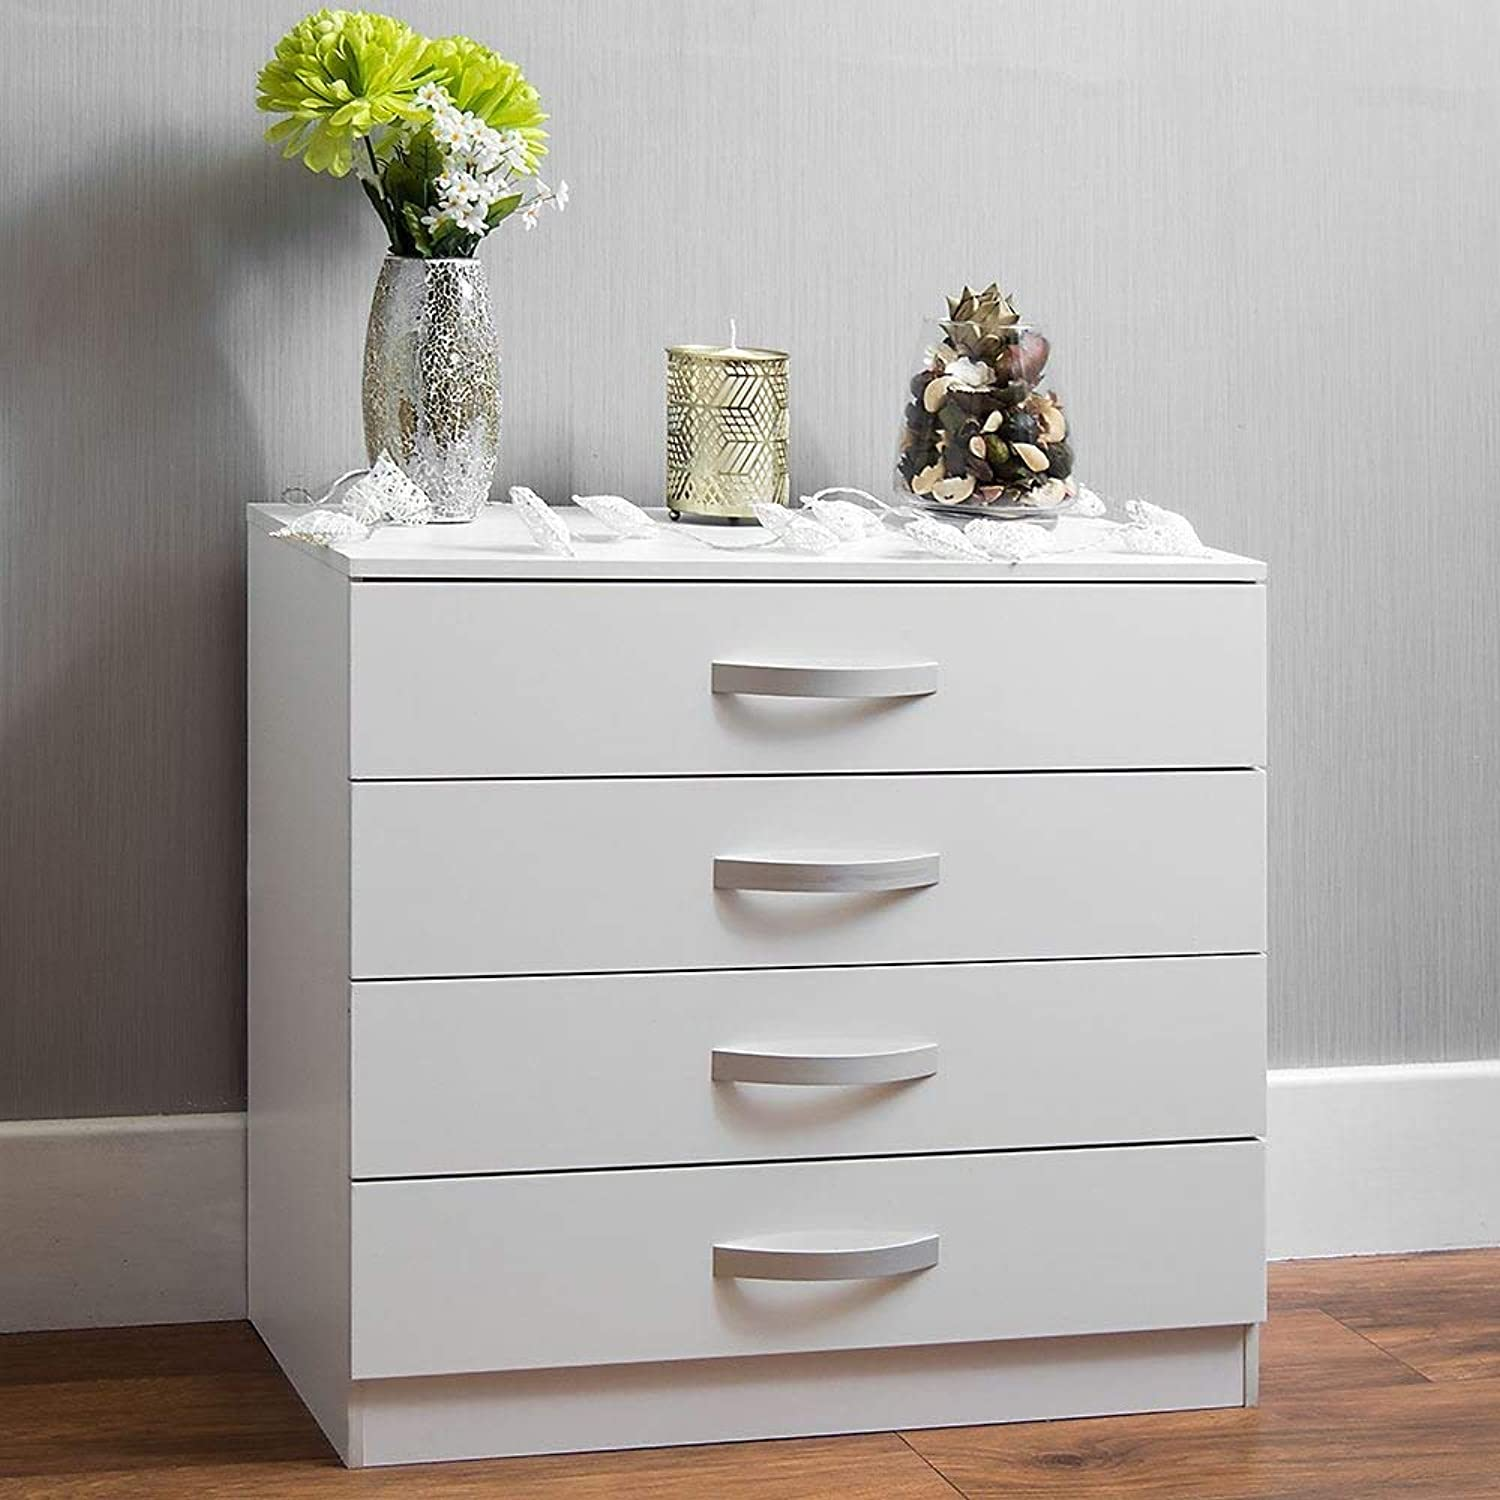 Home Hulio High Gloss Chest Of Drawers White, 4 Drawer With Metal Handles & Runners, Unique Anti-Bowing Drawer Support, Bedroom Furniture